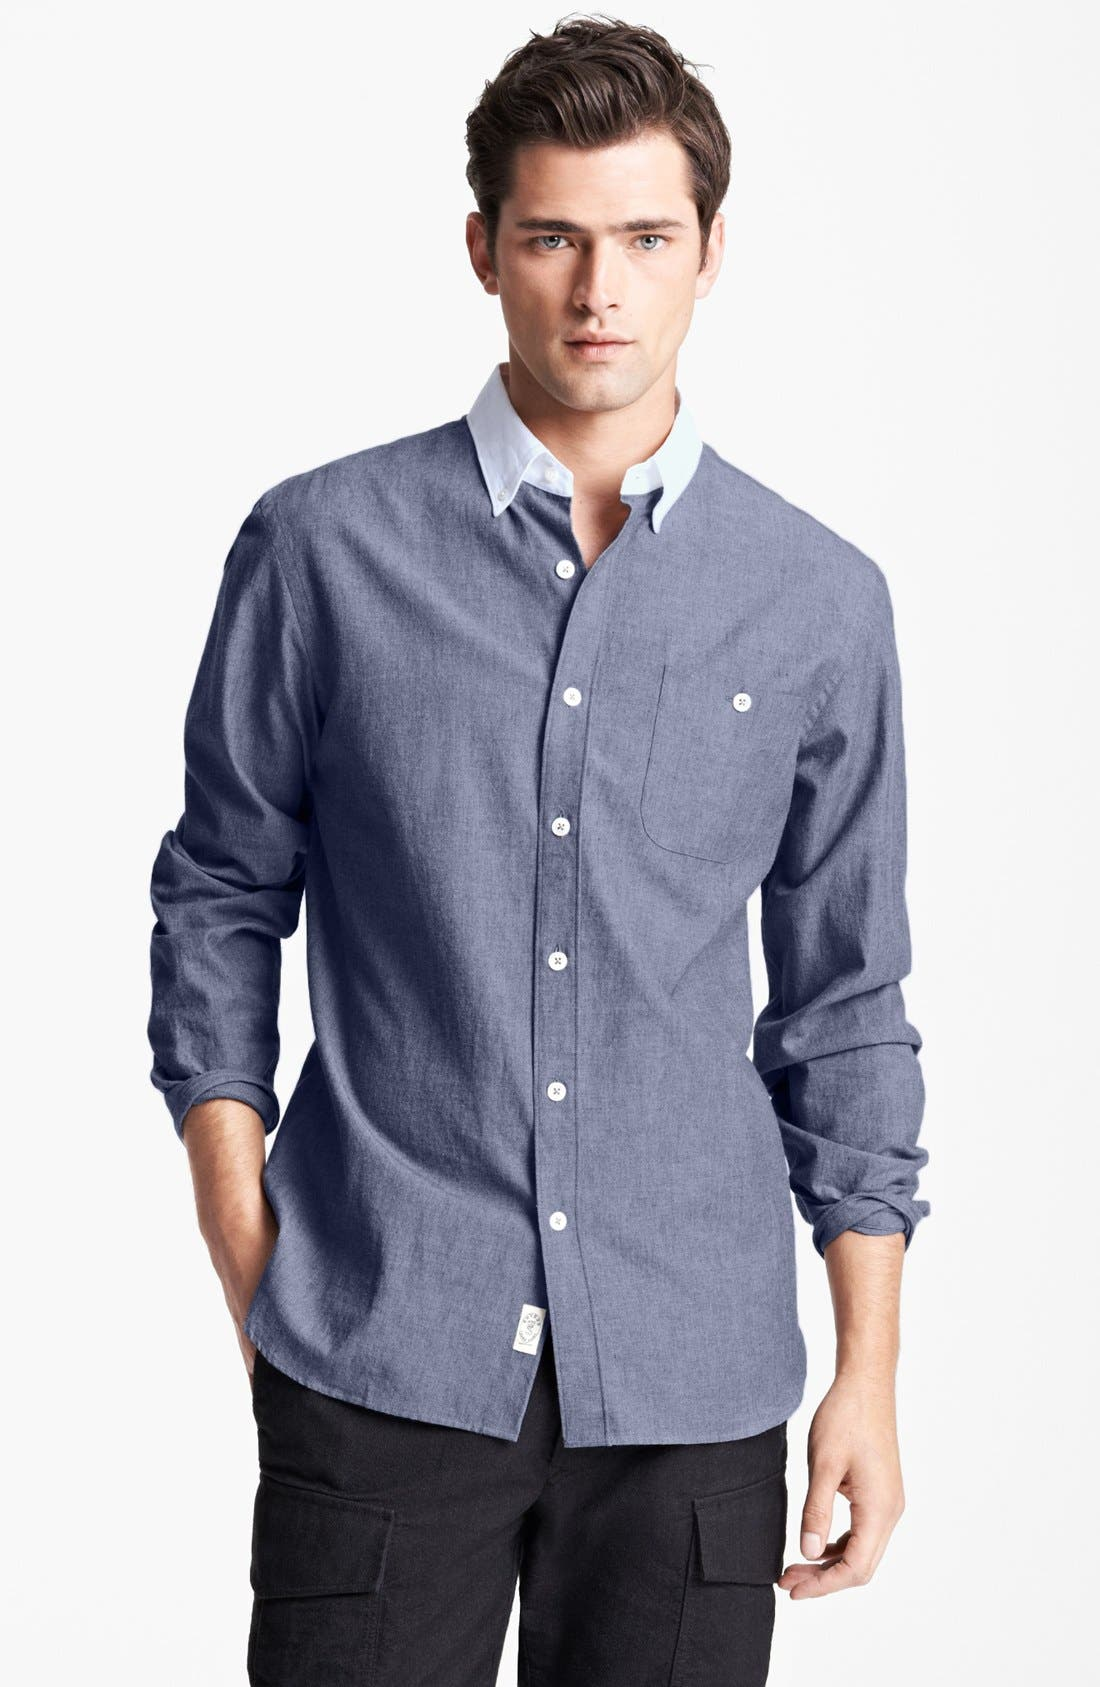 Main Image - Todd Snyder Chambray Sport Shirt with Contrast Collar